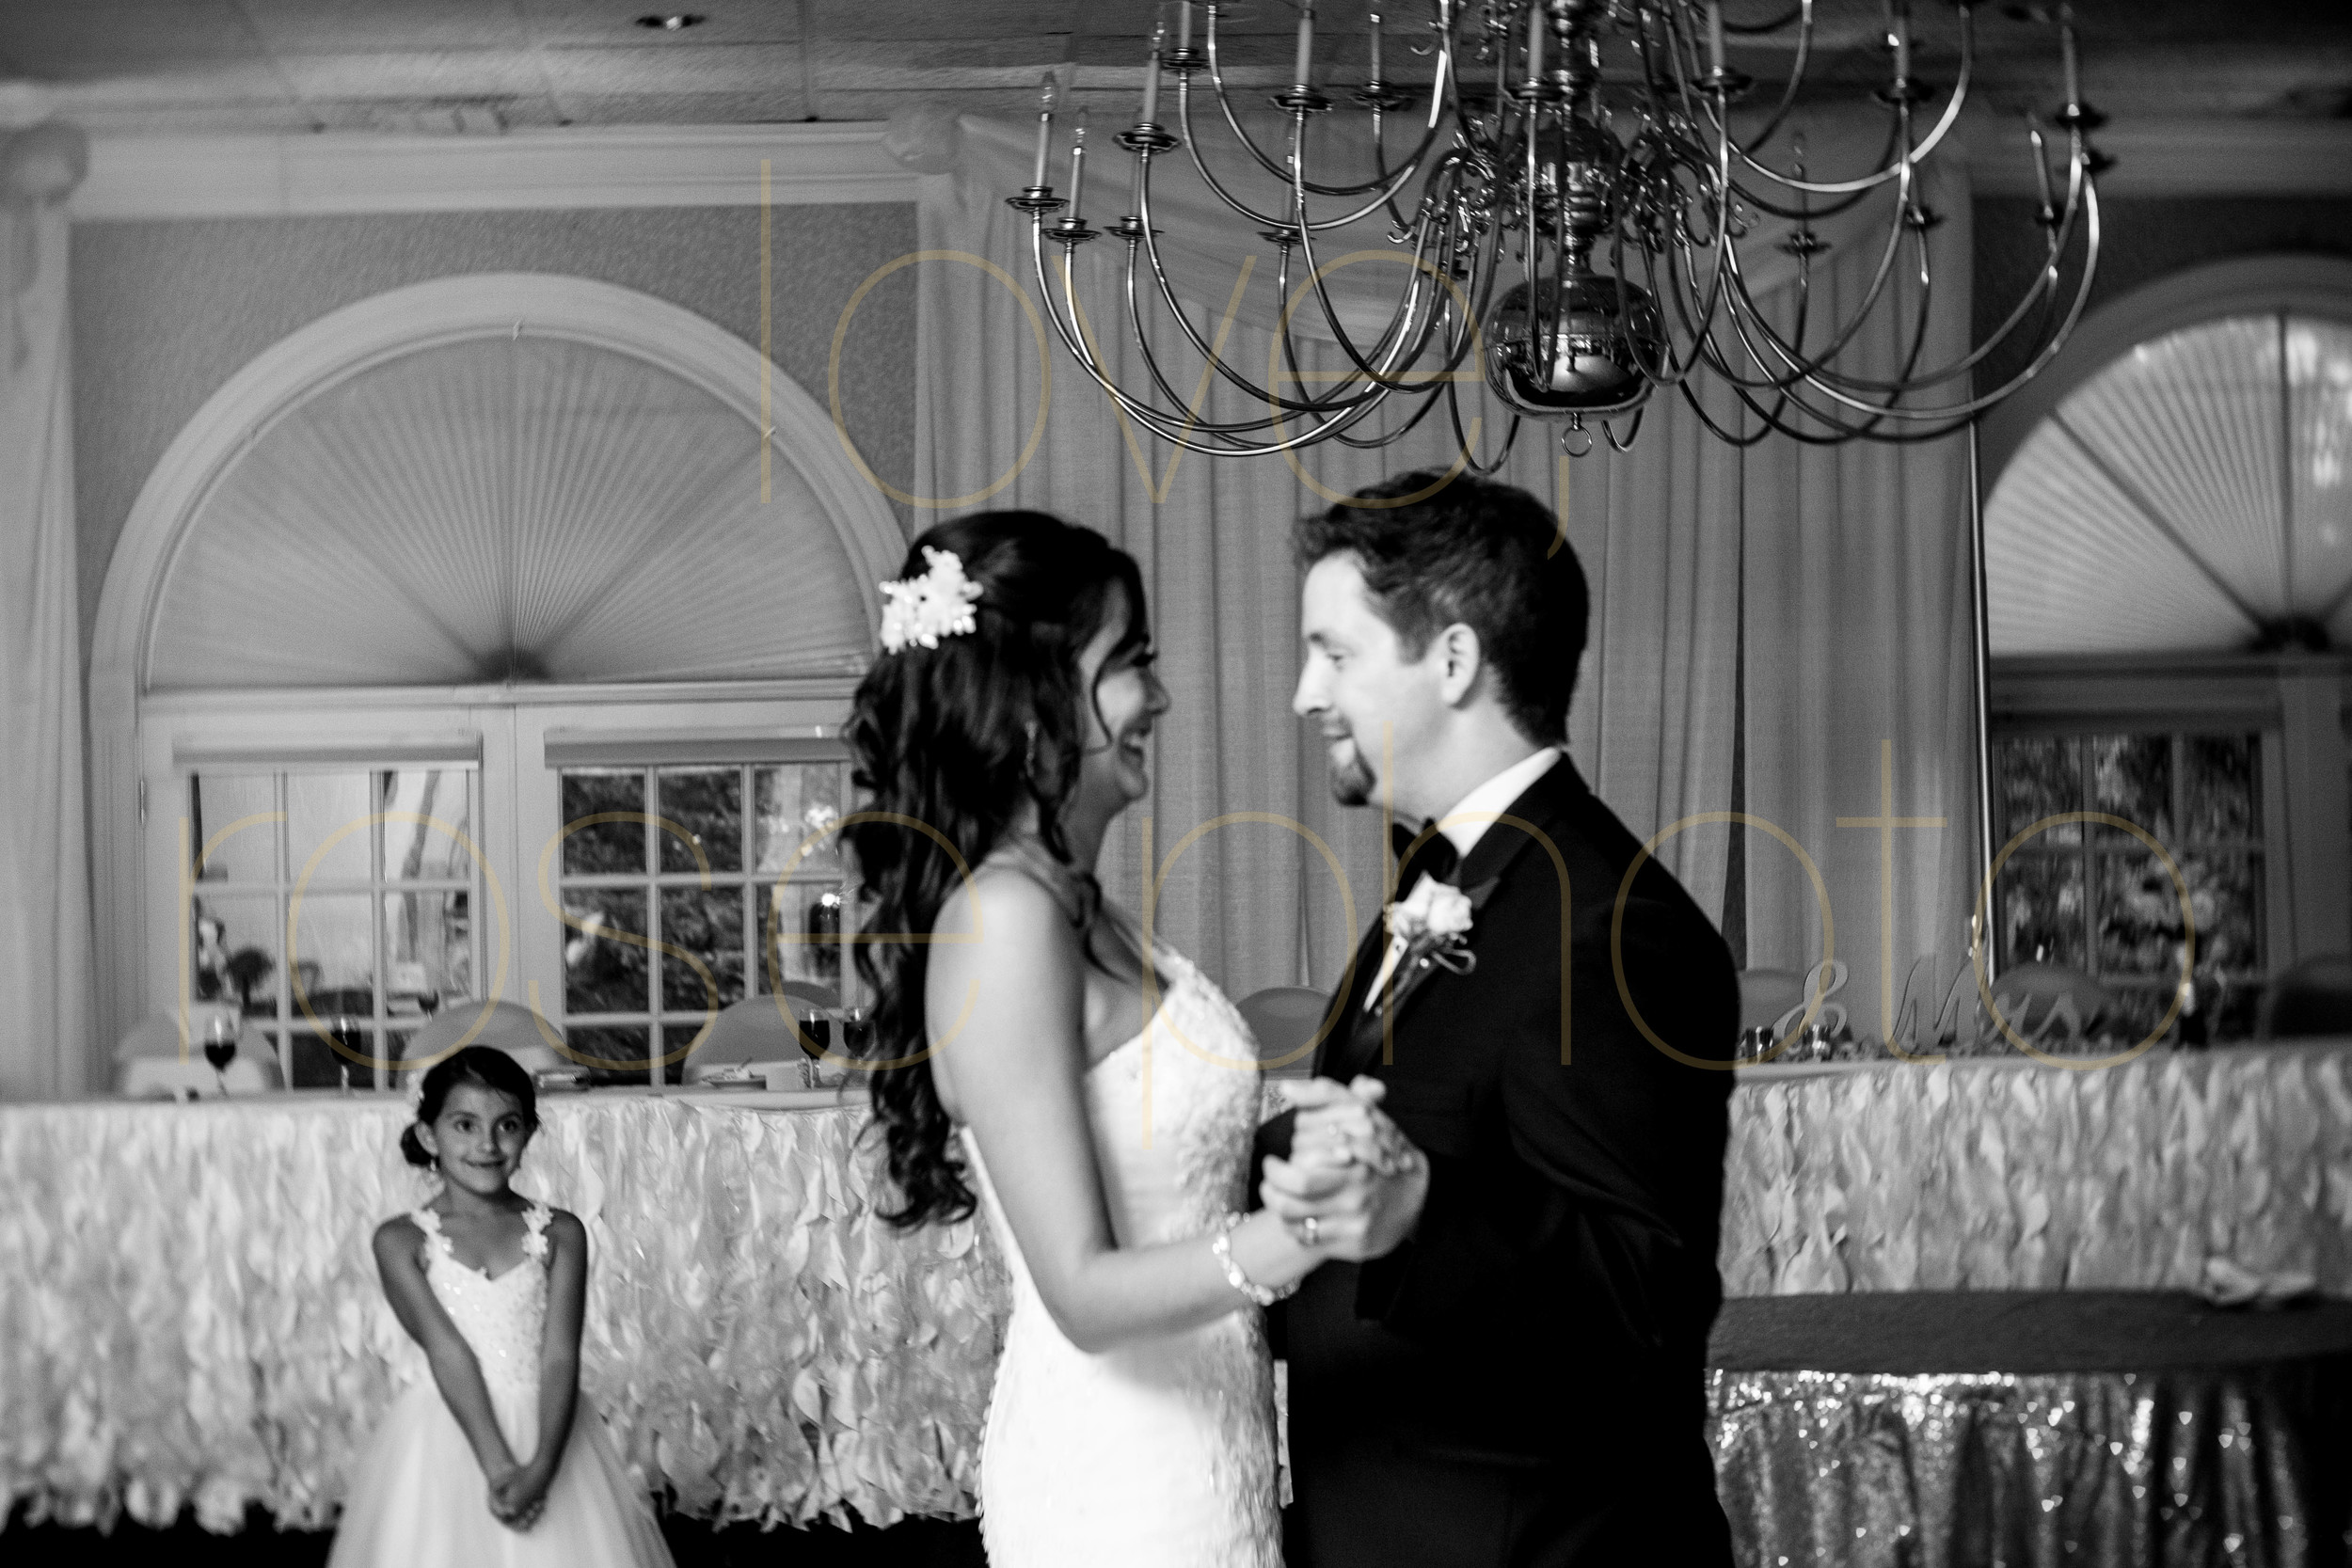 Claudia + Grant Heidel House Wiscon lake wedding best of chicago wedding photographers -39.jpg